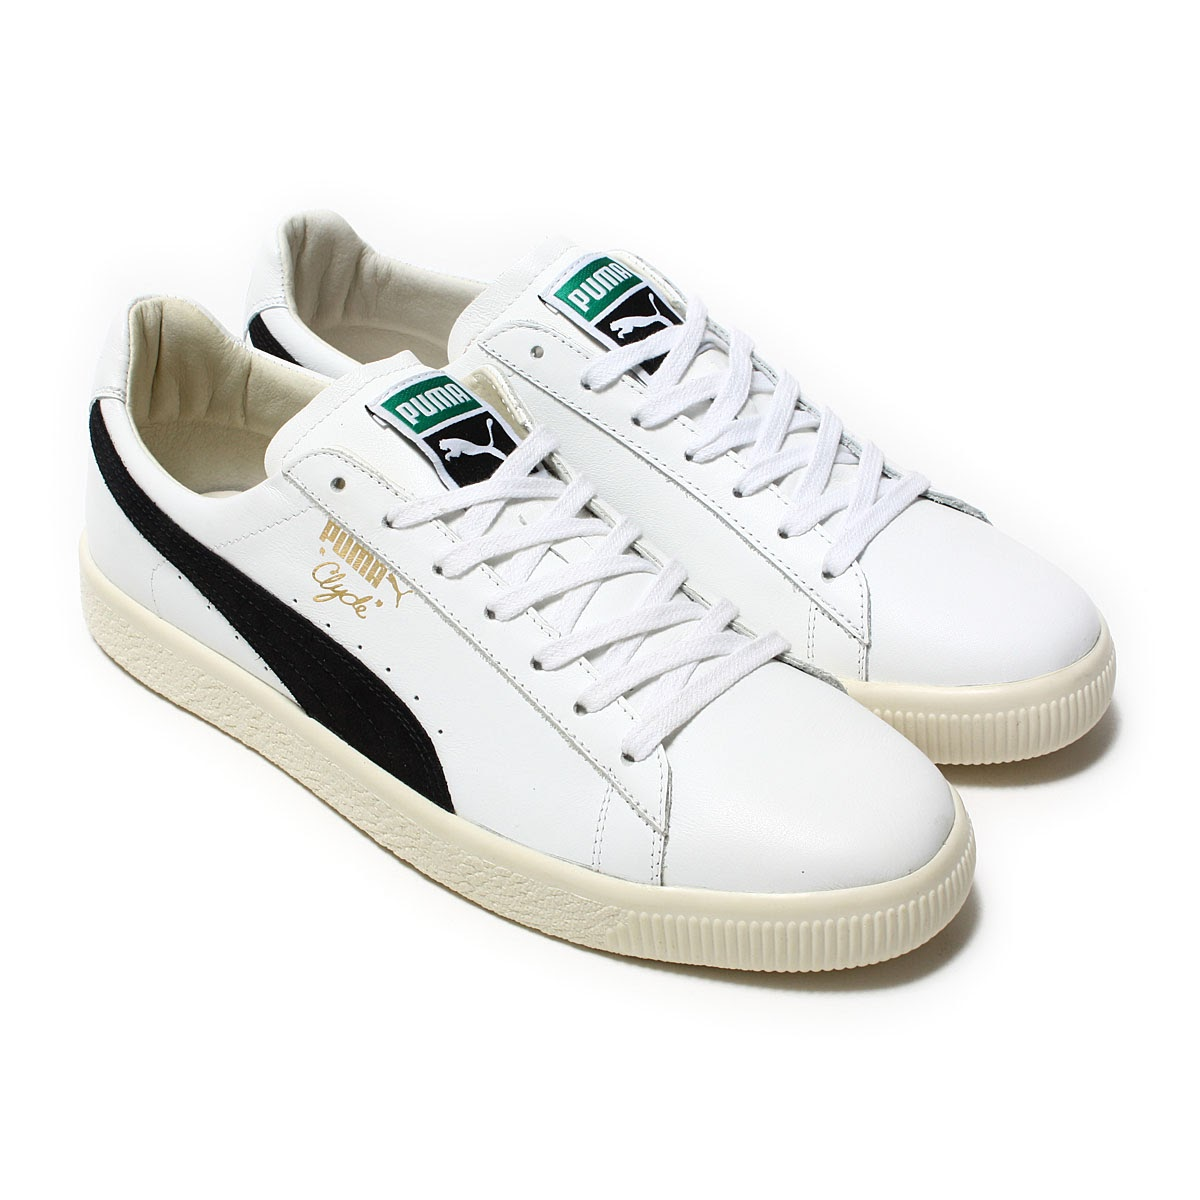 newest collection 63a01 2b8ad PUMA CLYDE AWAY (Puma Clyde away) (PUMA WHITE/ PUMA BLACK) 17SS-I